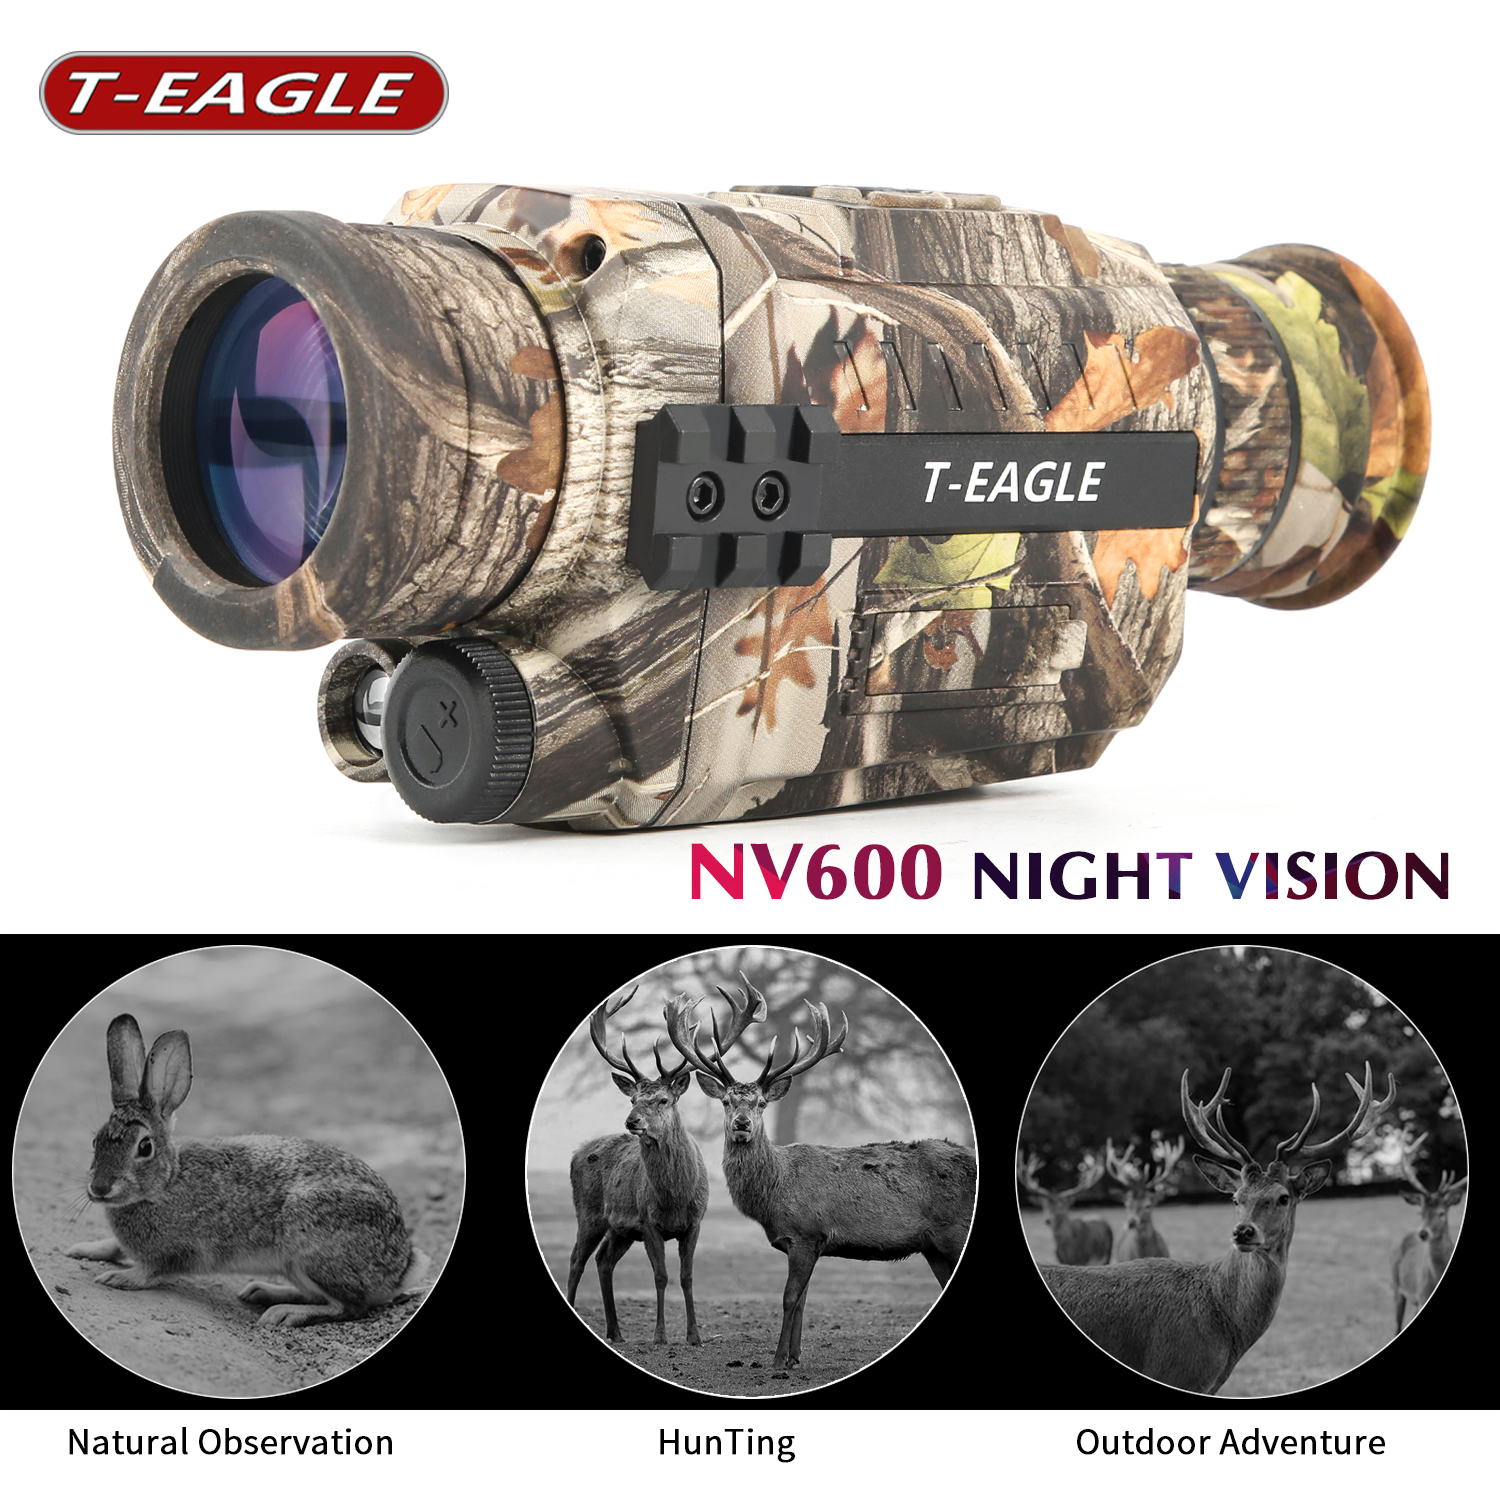 NV6010 Night Vision 5X Infrared Digital Camera Vedio 200m Range Monocular Scope For Hunting Tactical Infrared Night Vision